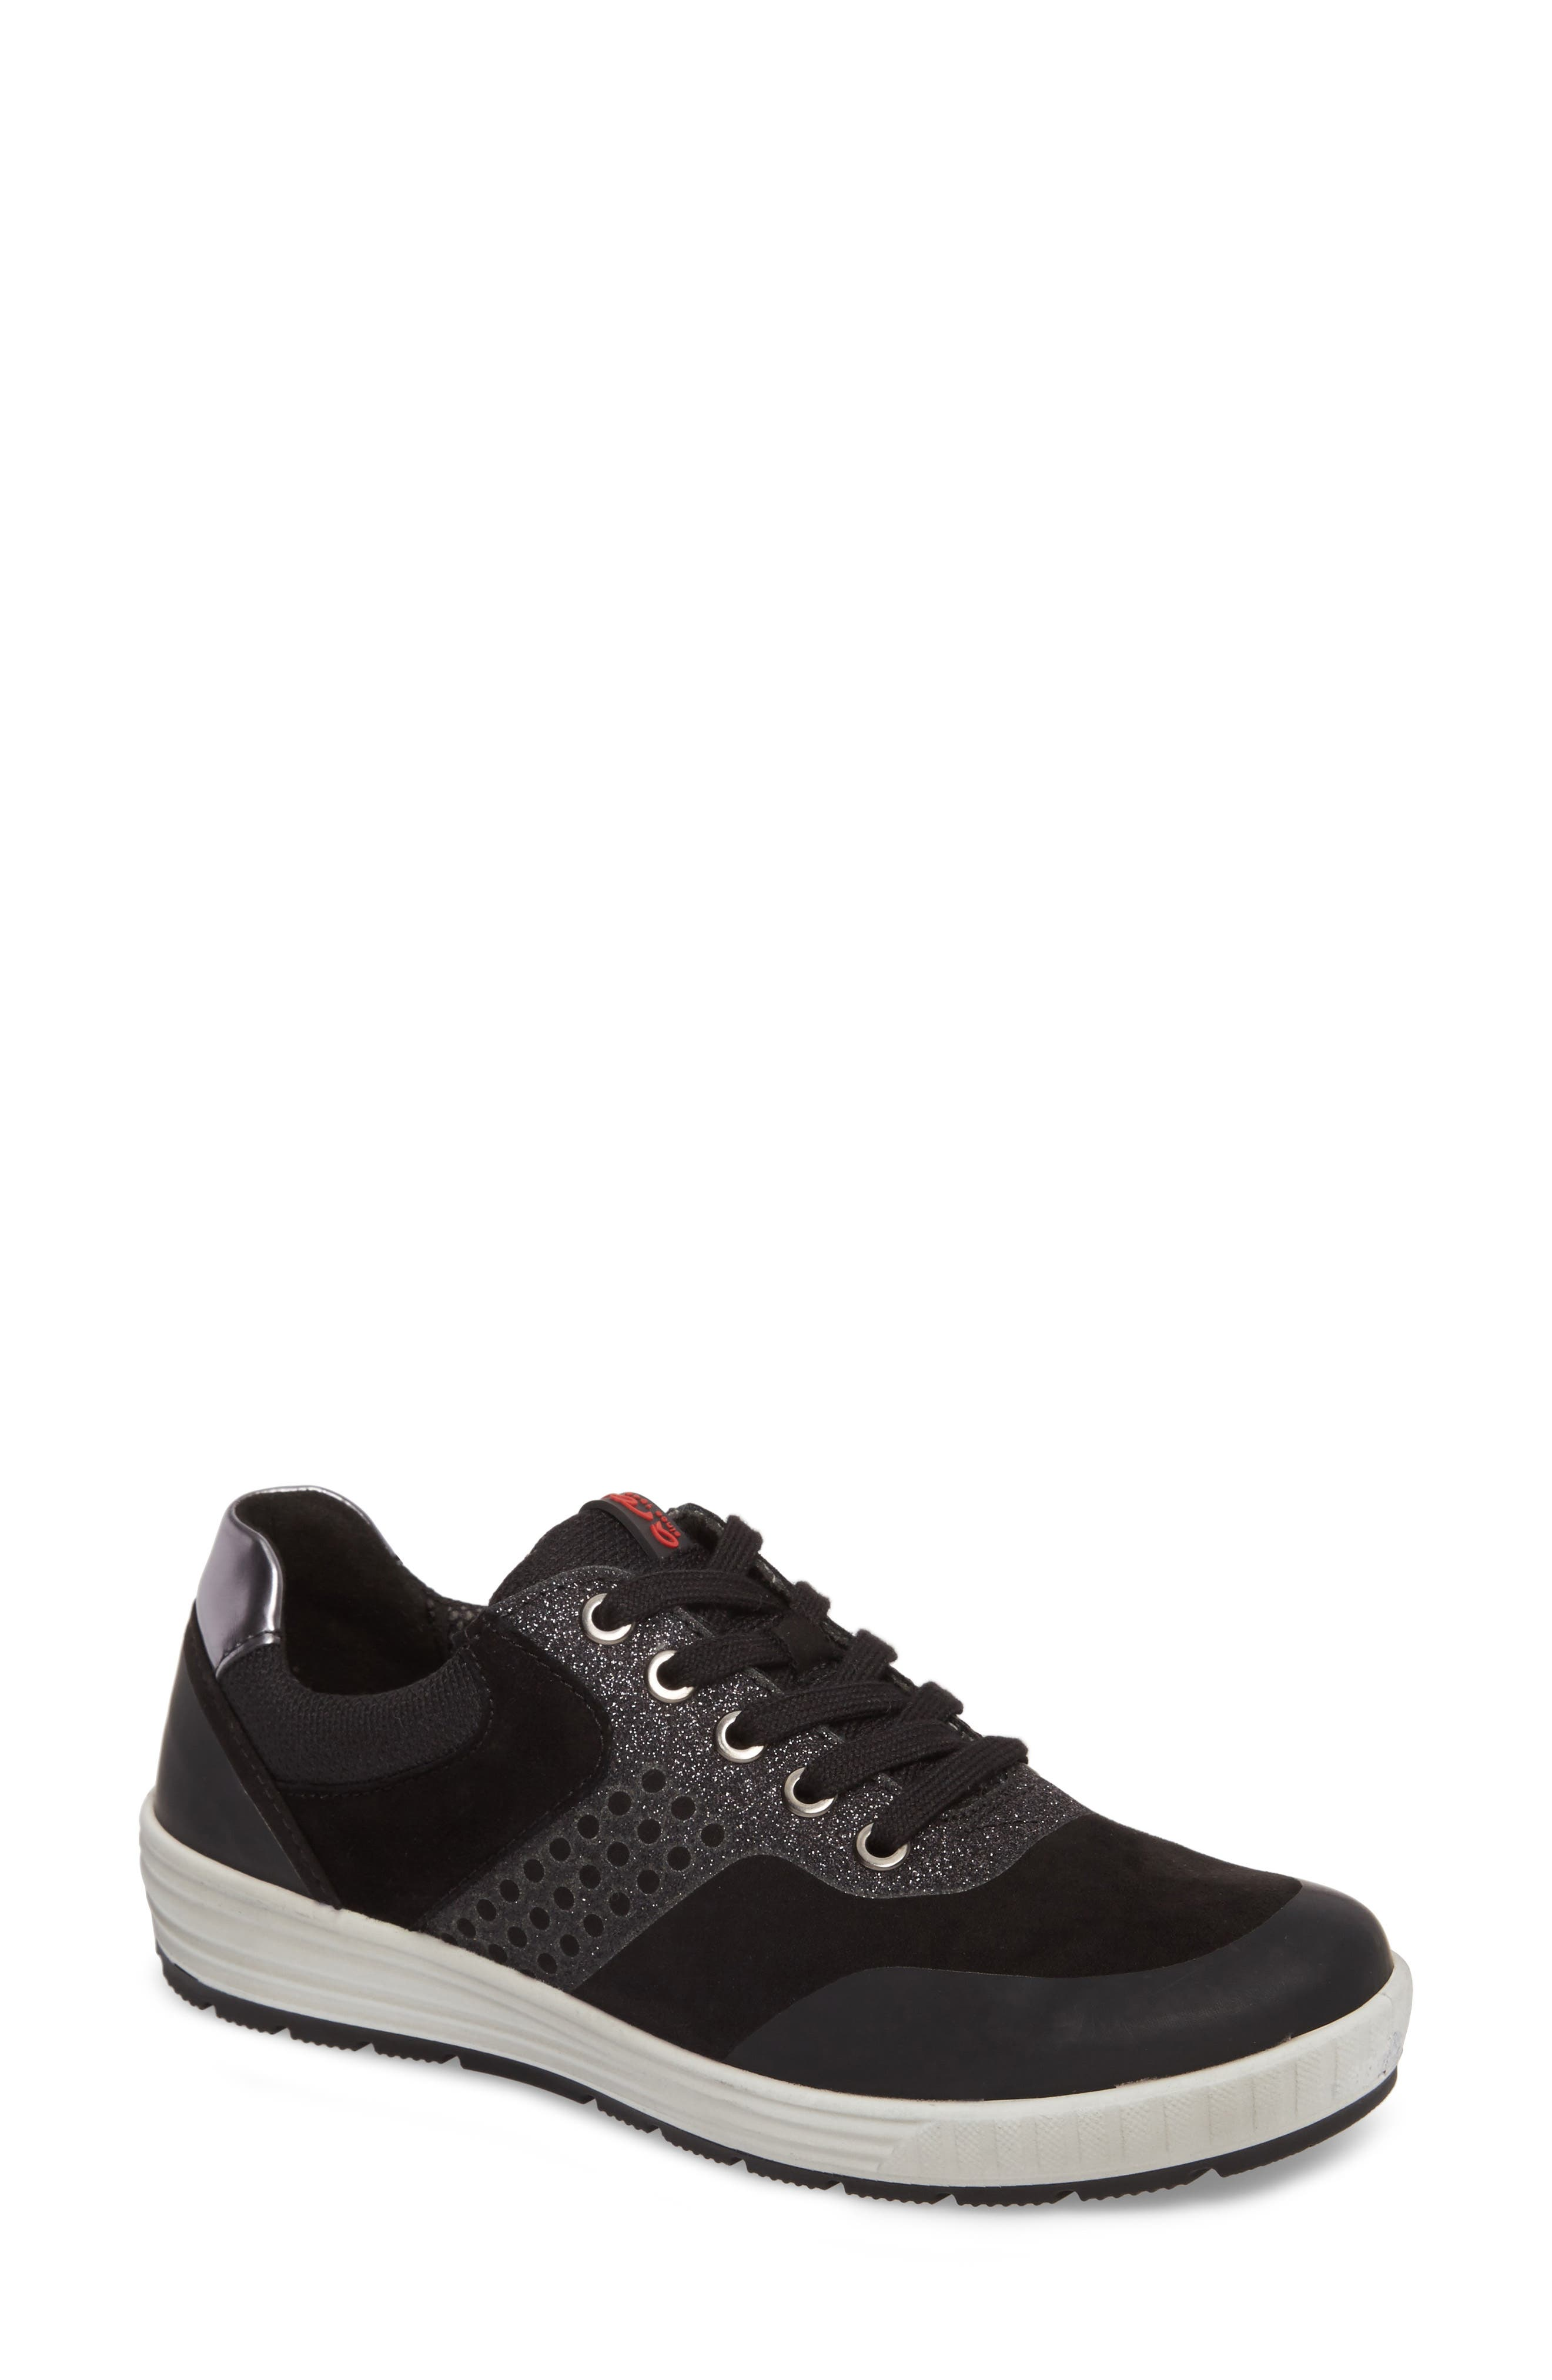 ARA Natalie Sneaker, Main, color, BLACK LEATHER